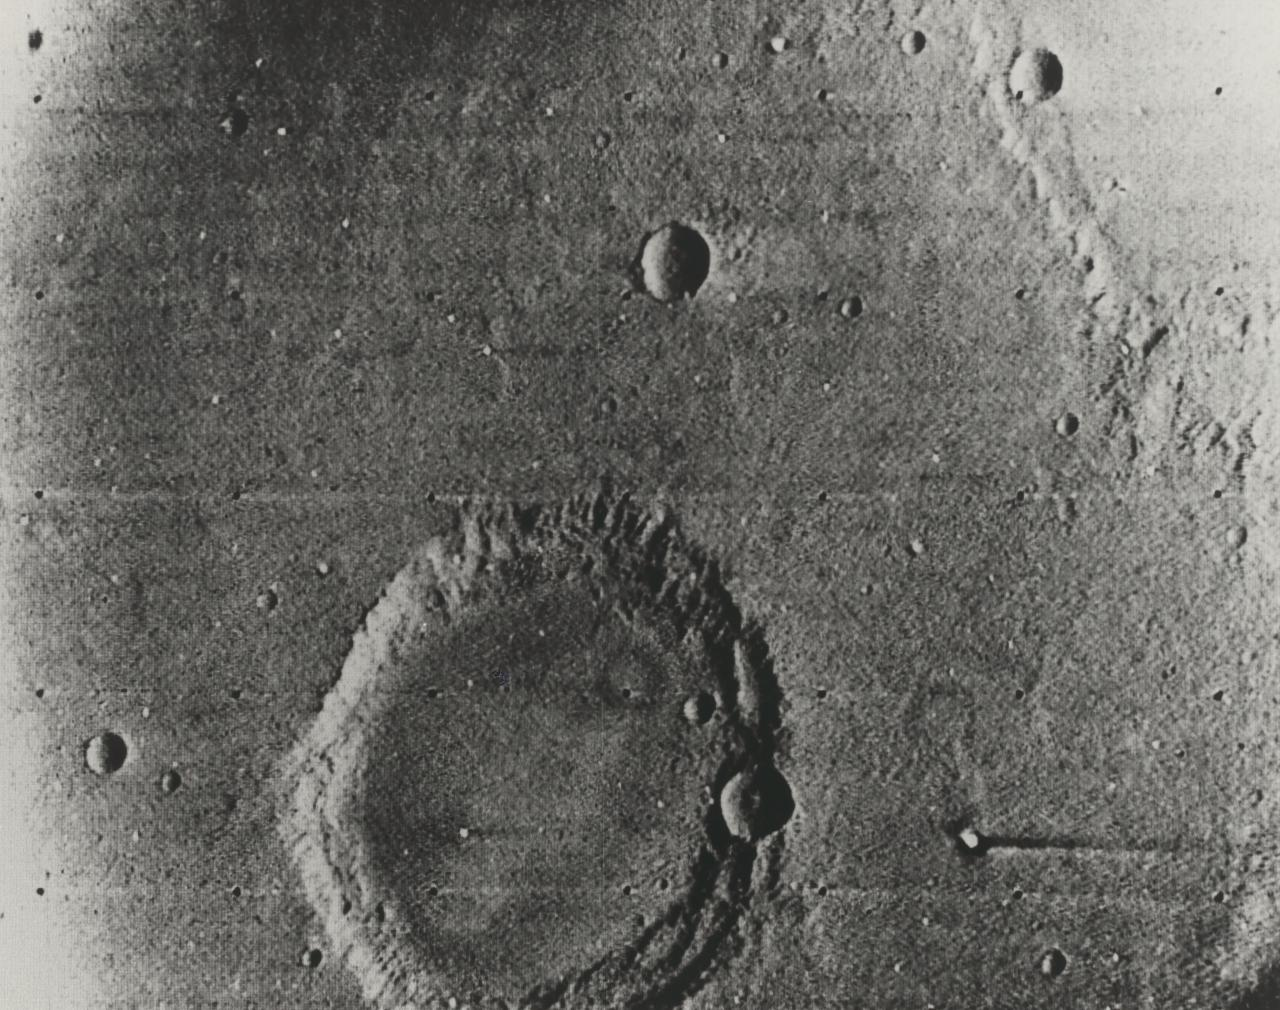 Mariner 6 picture of Mars. 63 x 48 miles featuring large crater about 24 miles across